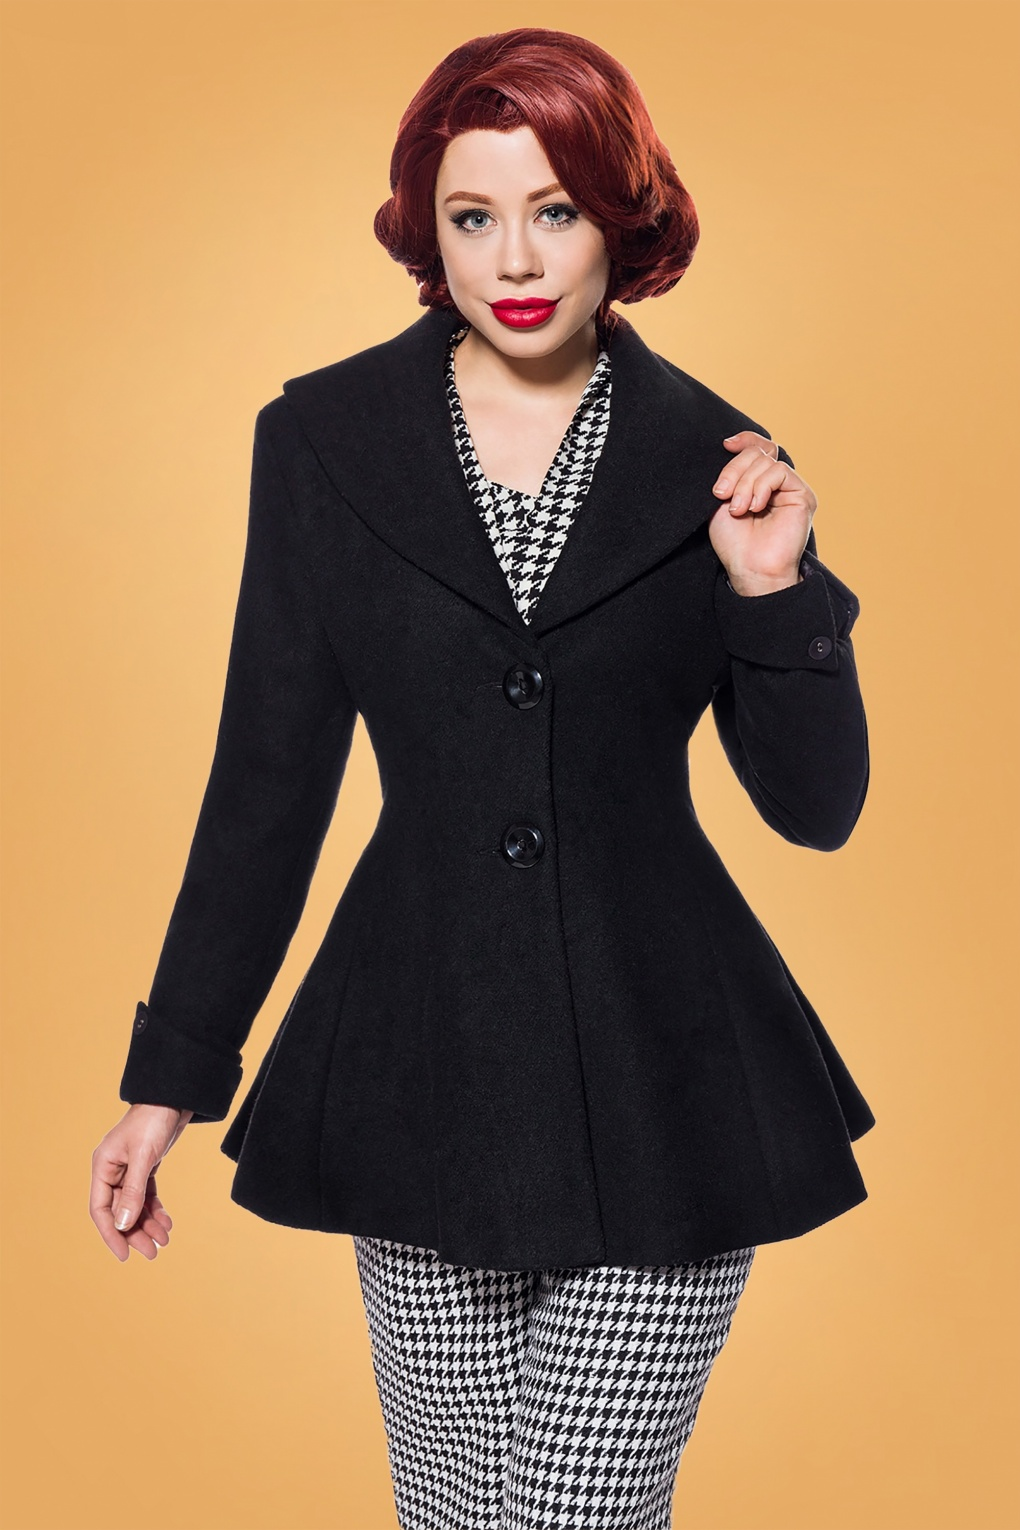 Vintage Coats & Jackets | Retro Coats and Jackets 50s Carlie Jacket in Black Wool £88.46 AT vintagedancer.com